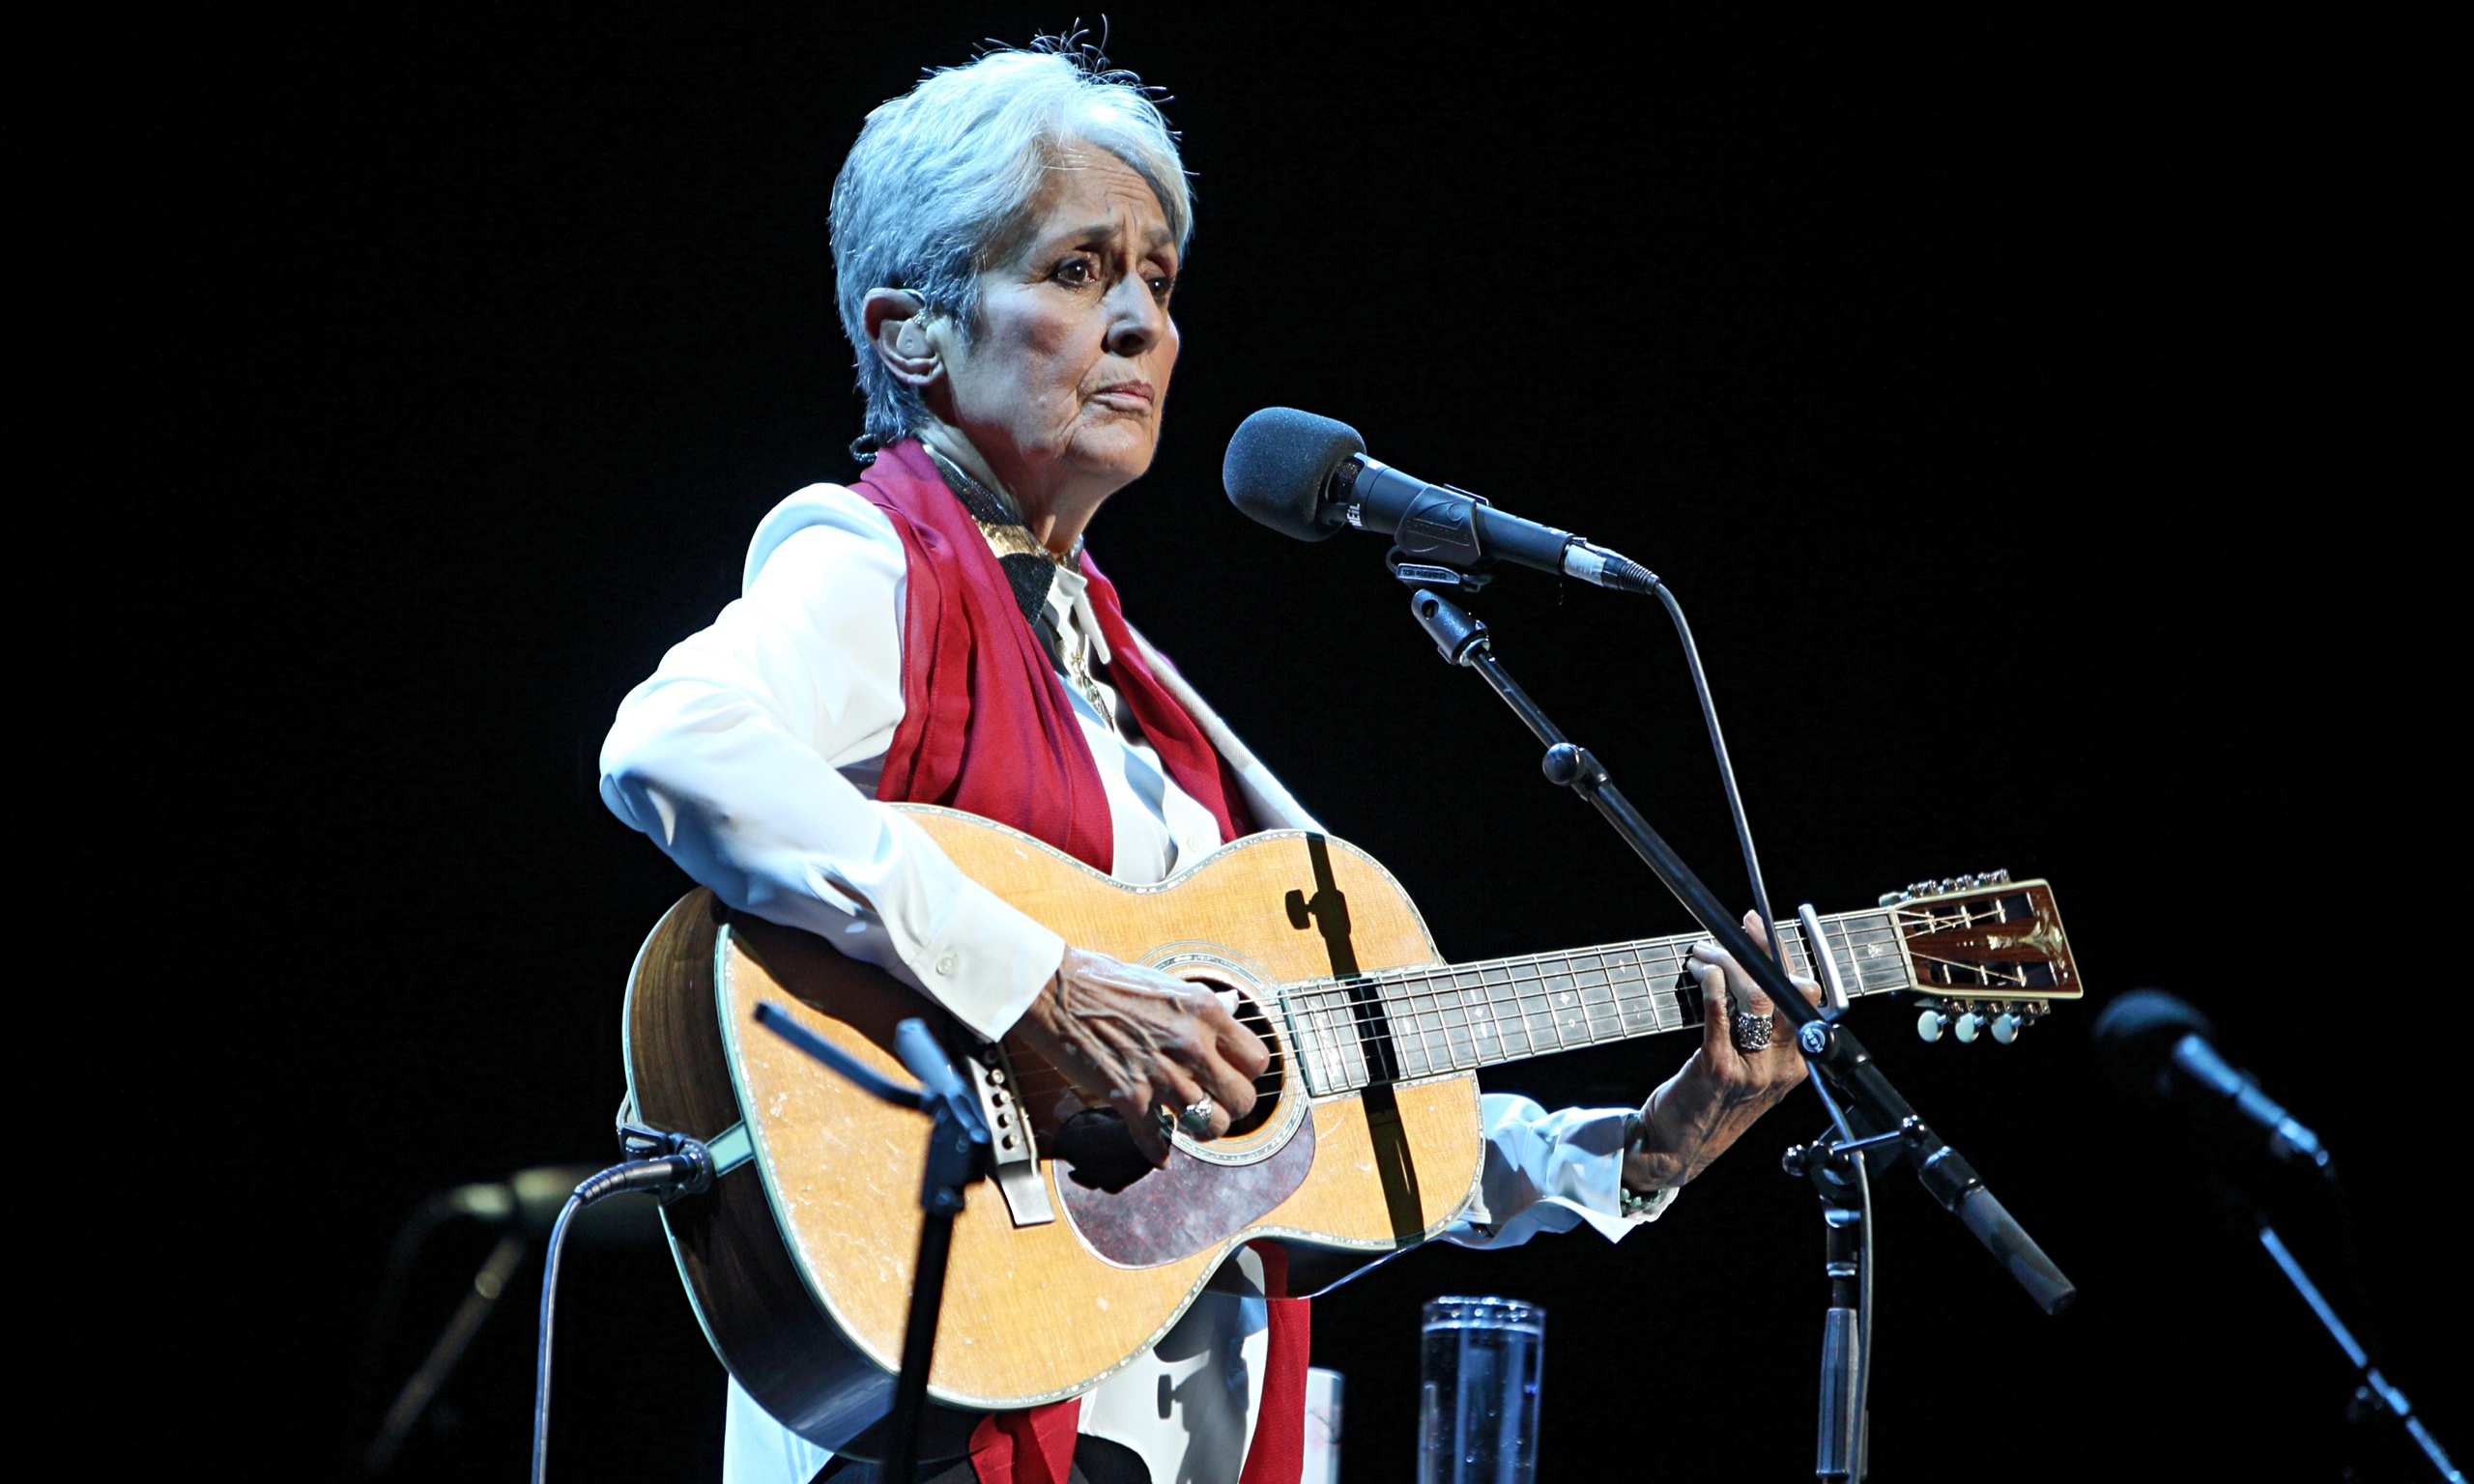 joan baez review an intimate thoughtful performance music the guardian. Black Bedroom Furniture Sets. Home Design Ideas